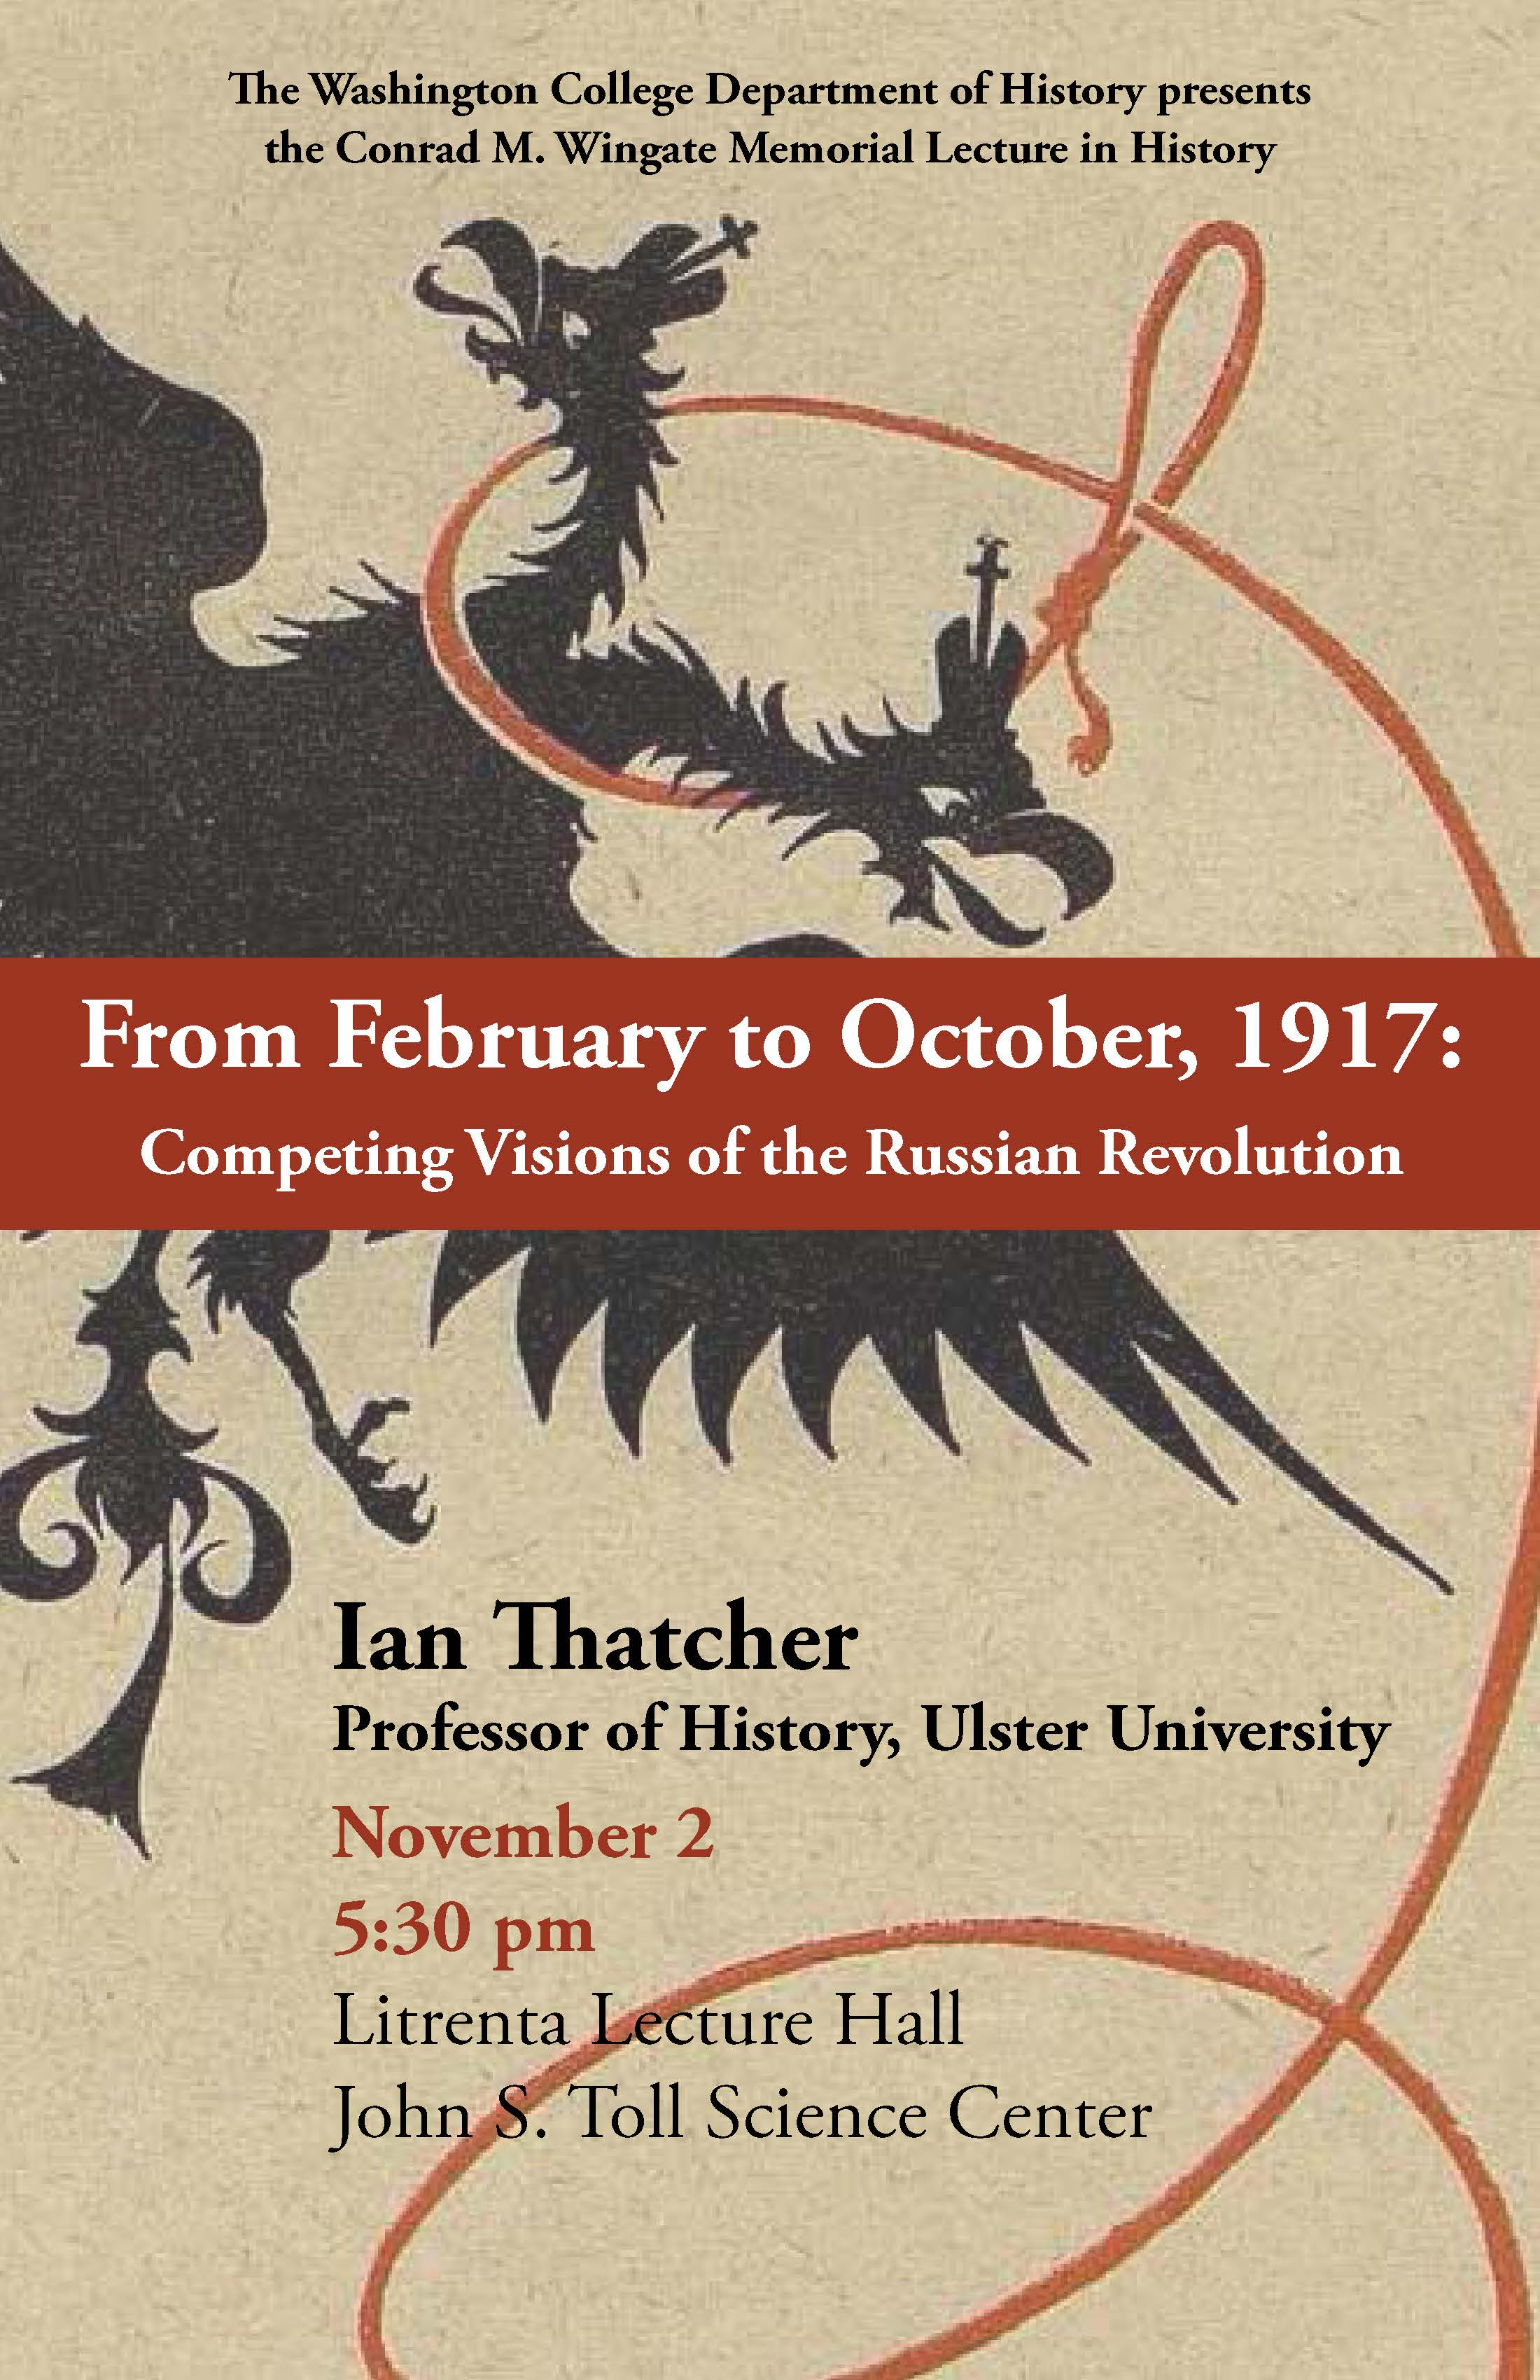 From Feburary to October, 1917: Competing Visions of the Russian Revolution